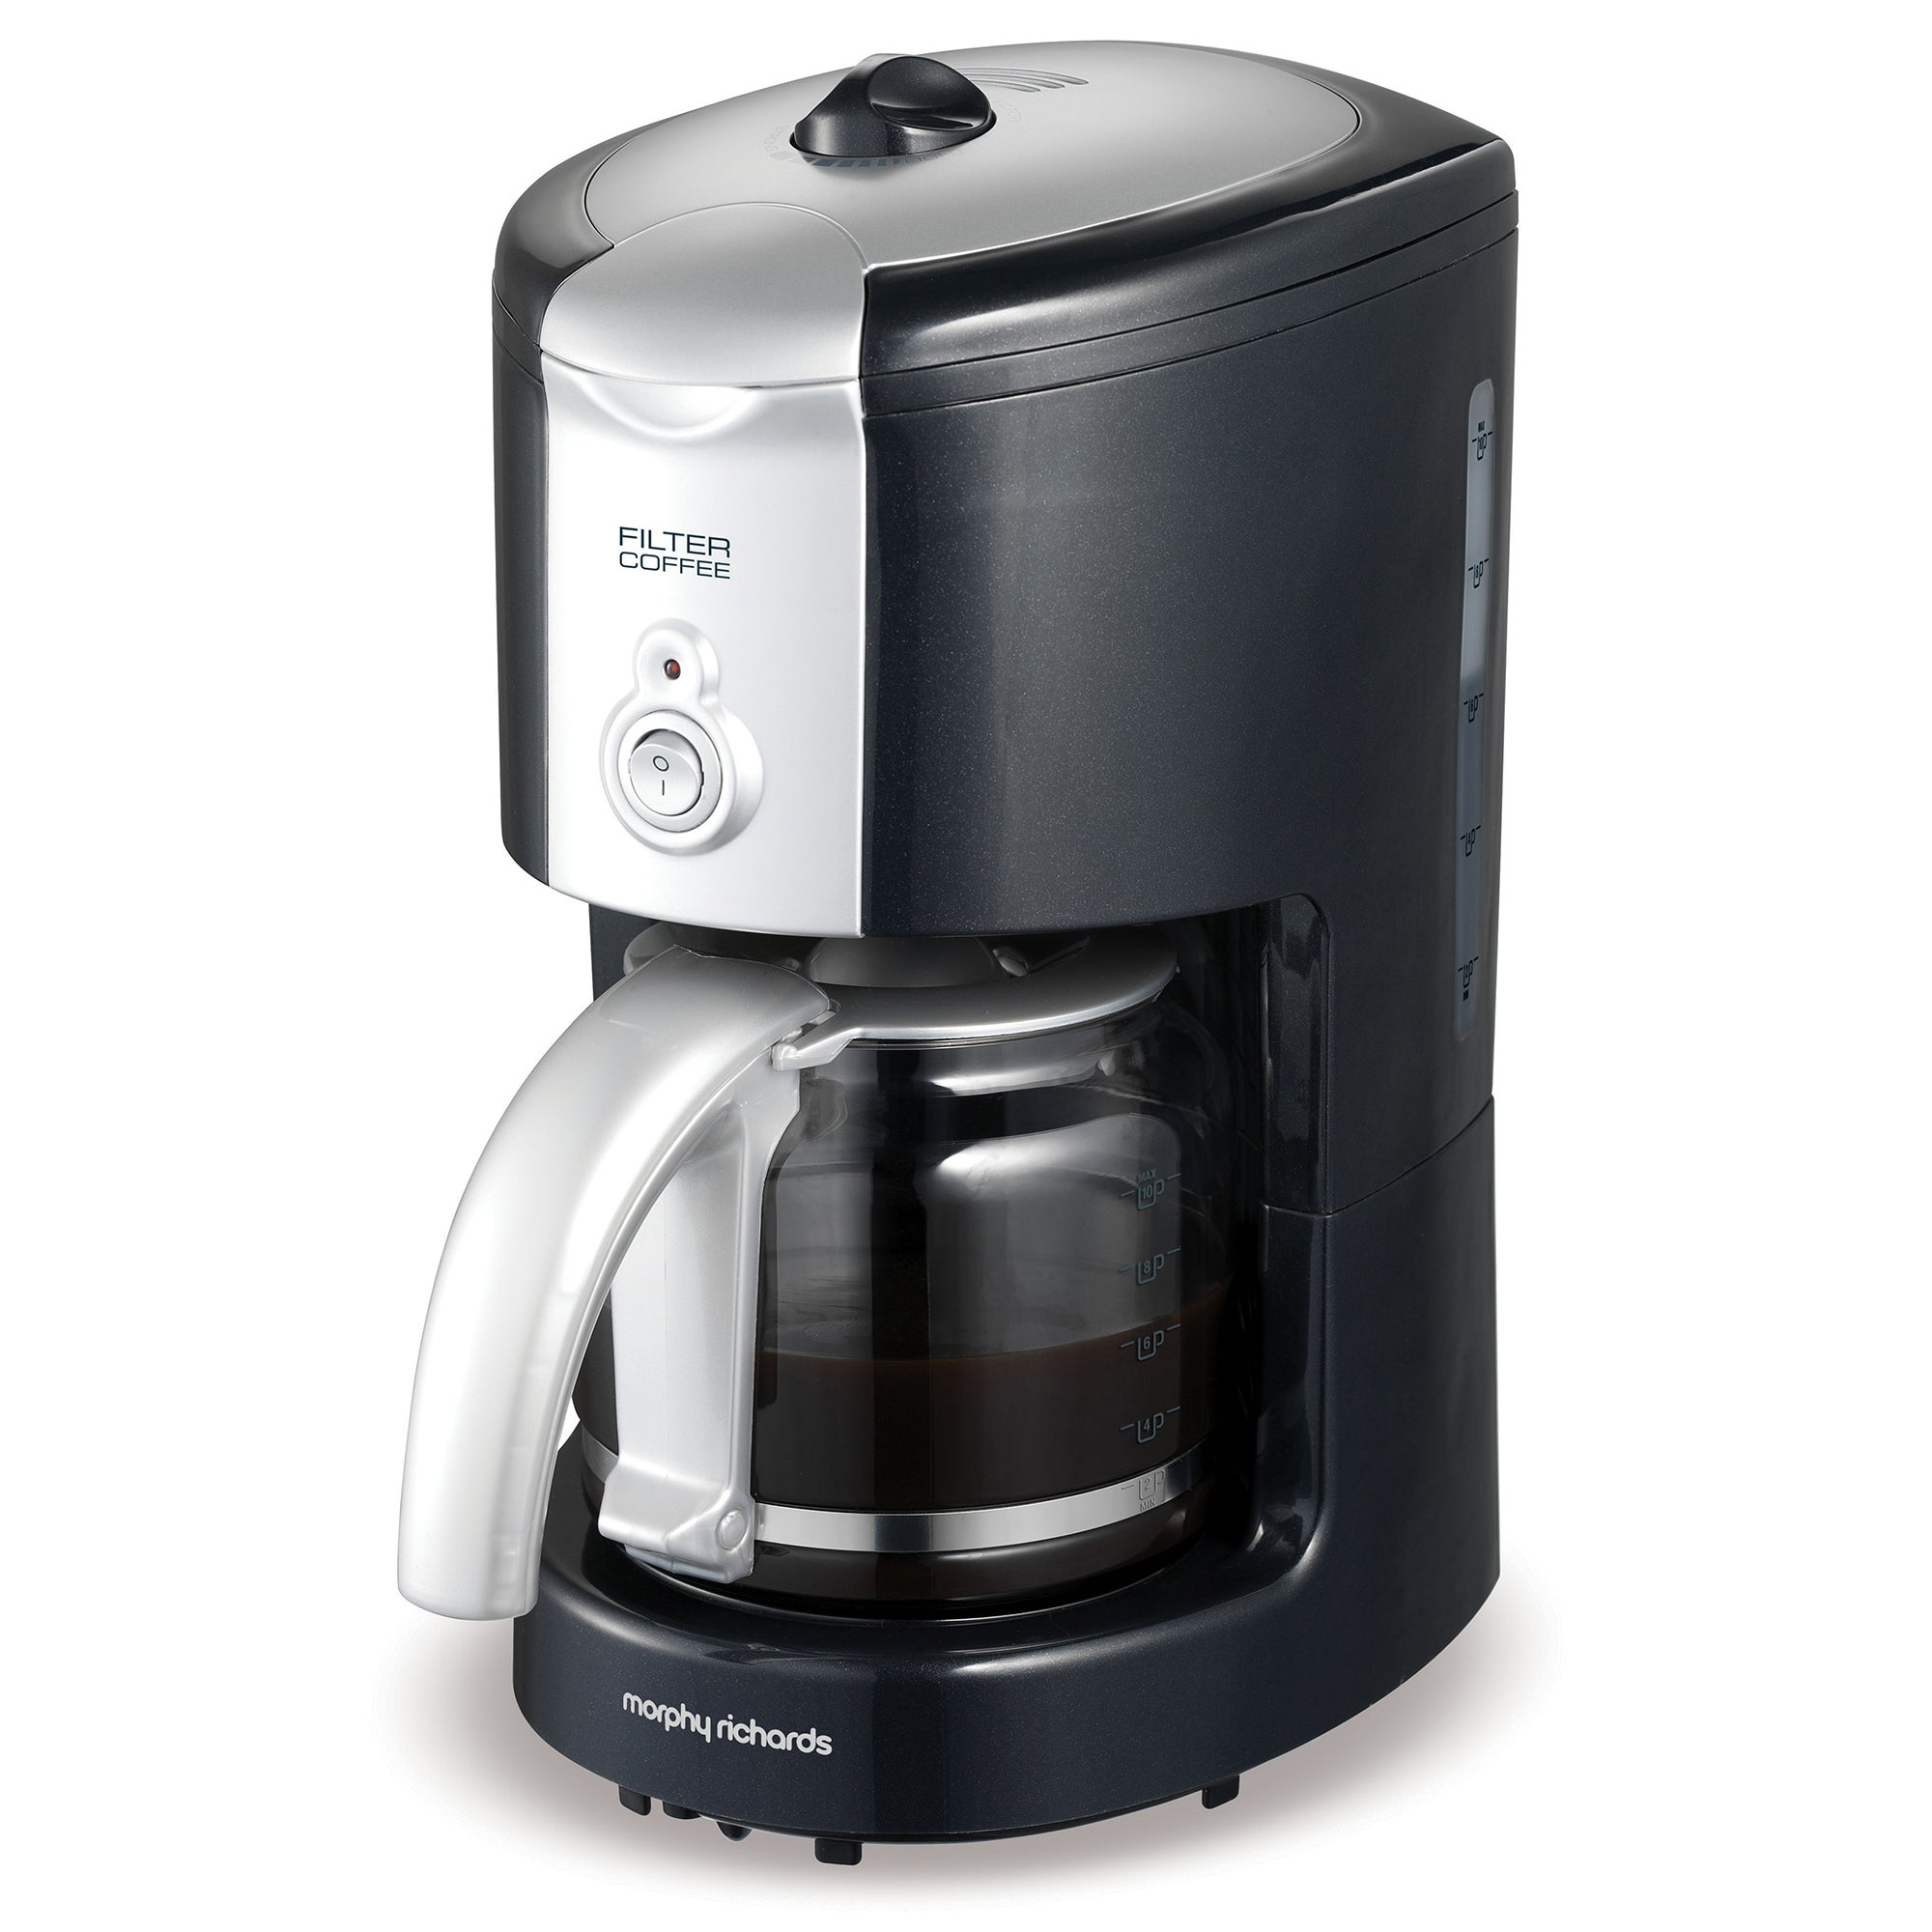 Morphy Richards Filter Coffee Maker